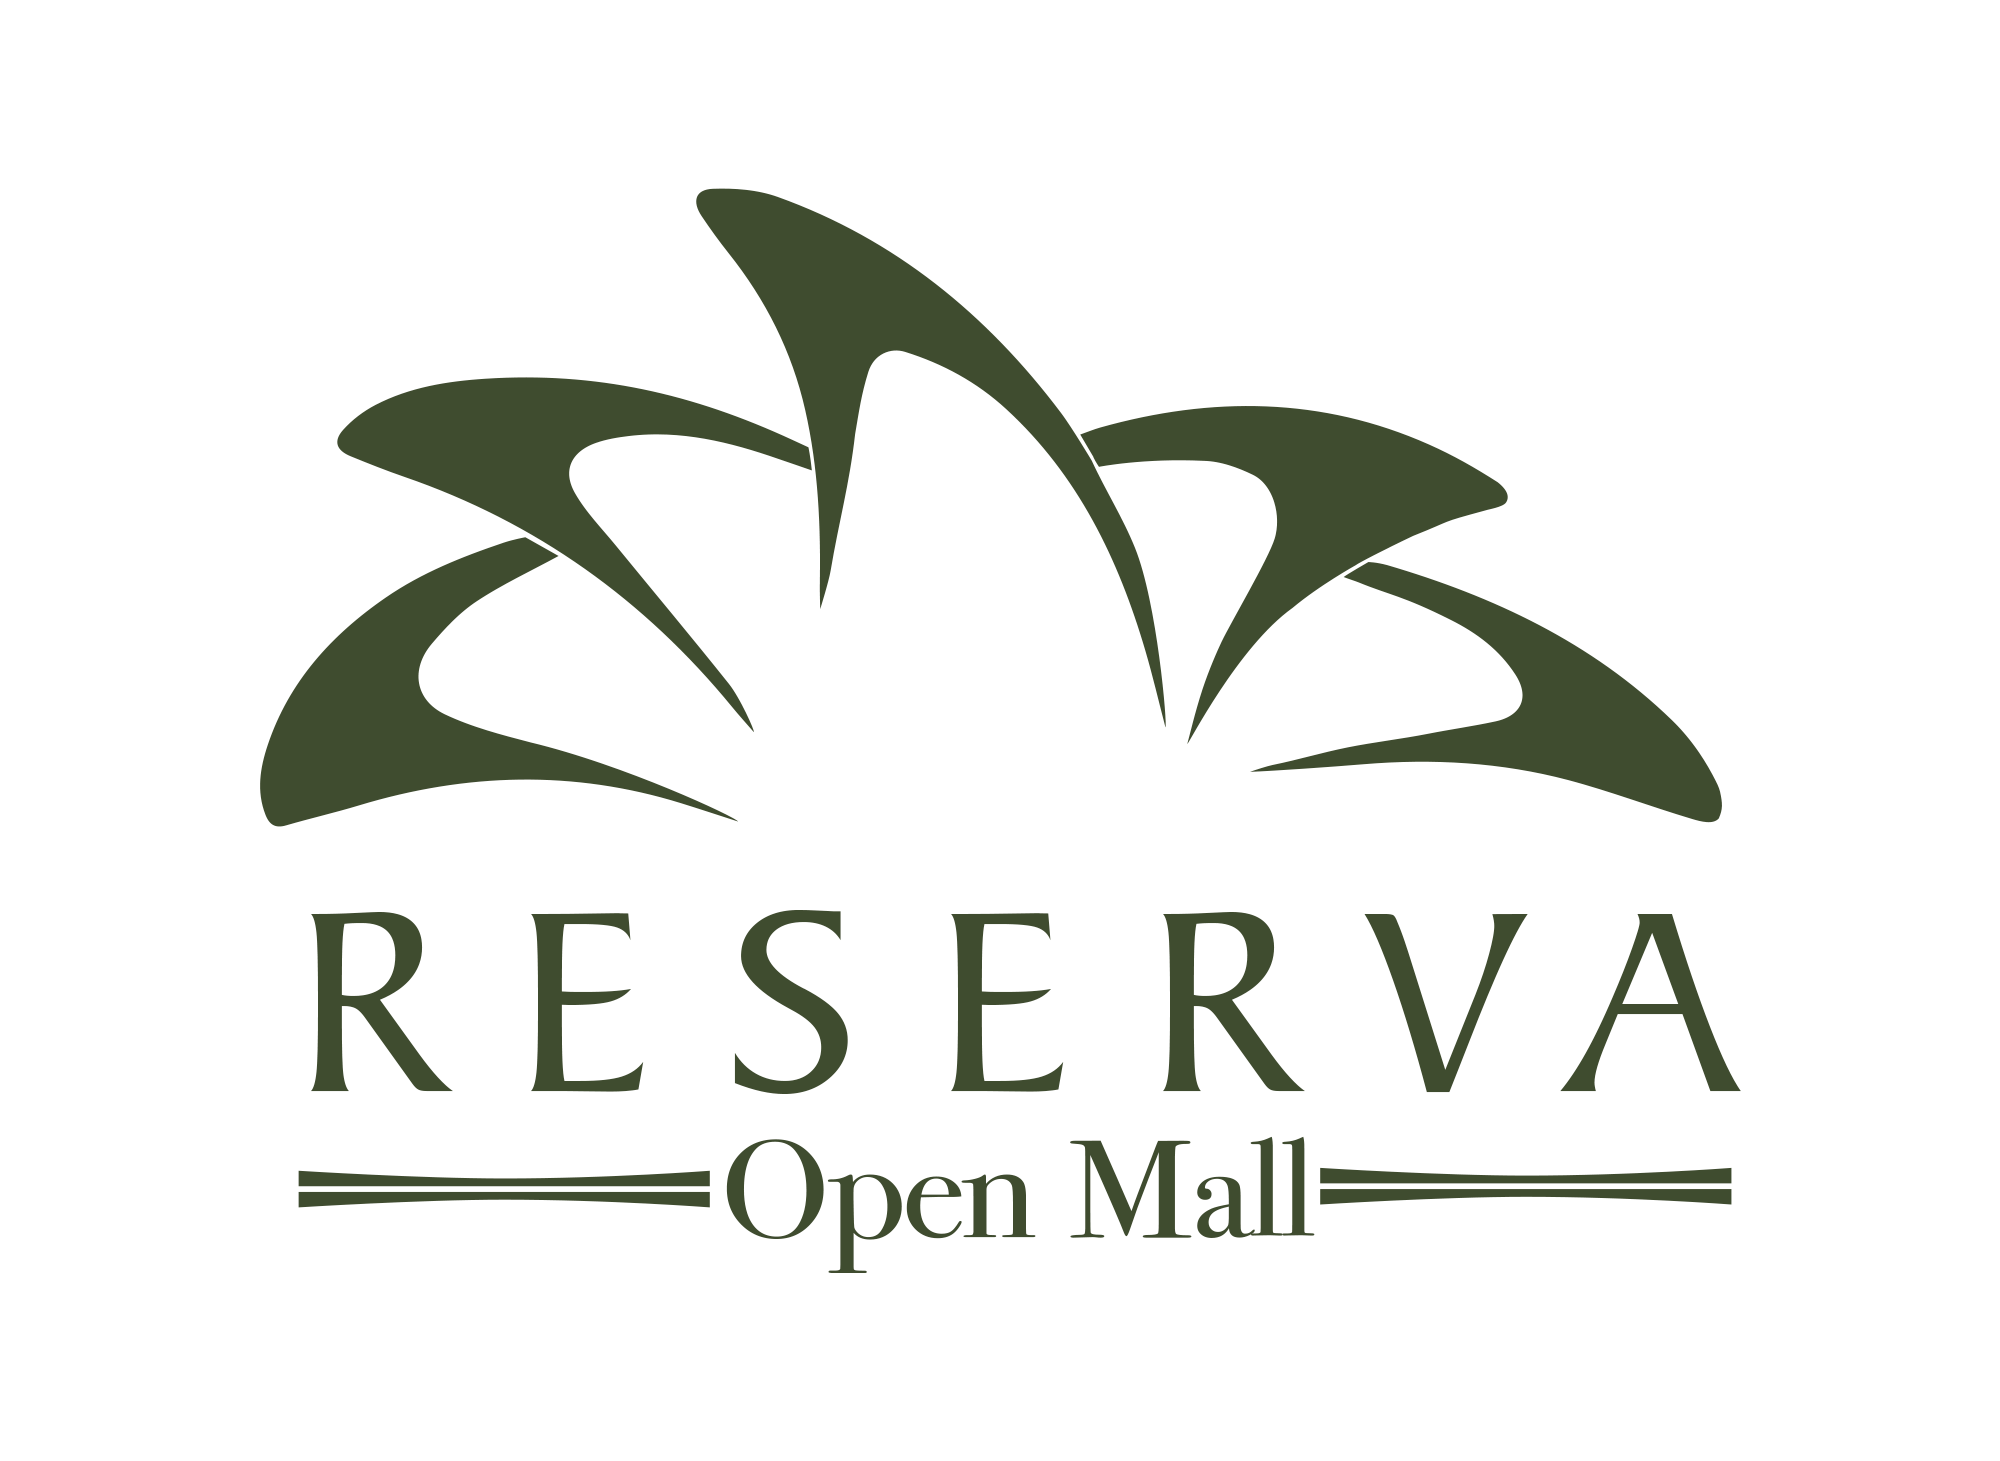 reserva-open-mall-clientes-agencia-diretriz-digital-marketing-fortaleza